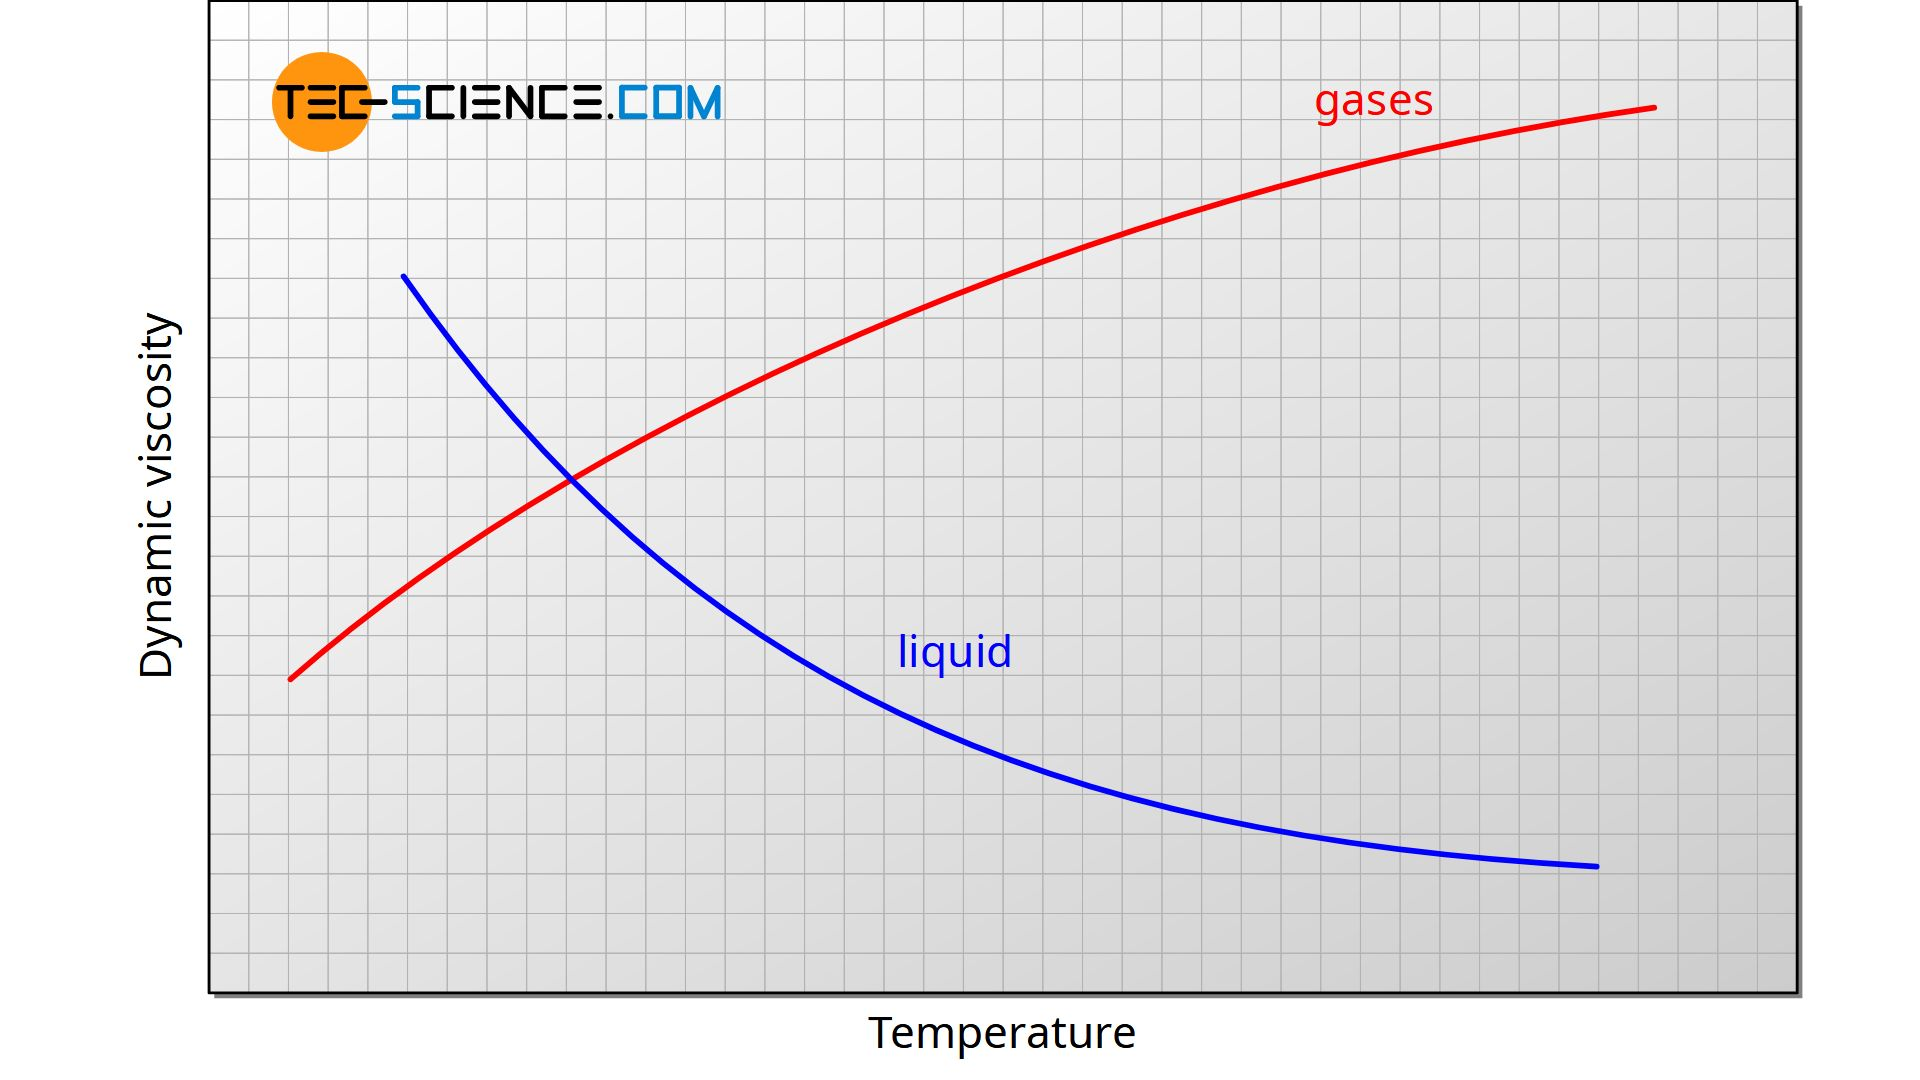 Dynamic viscosity of gases and liquids as a function of temperature